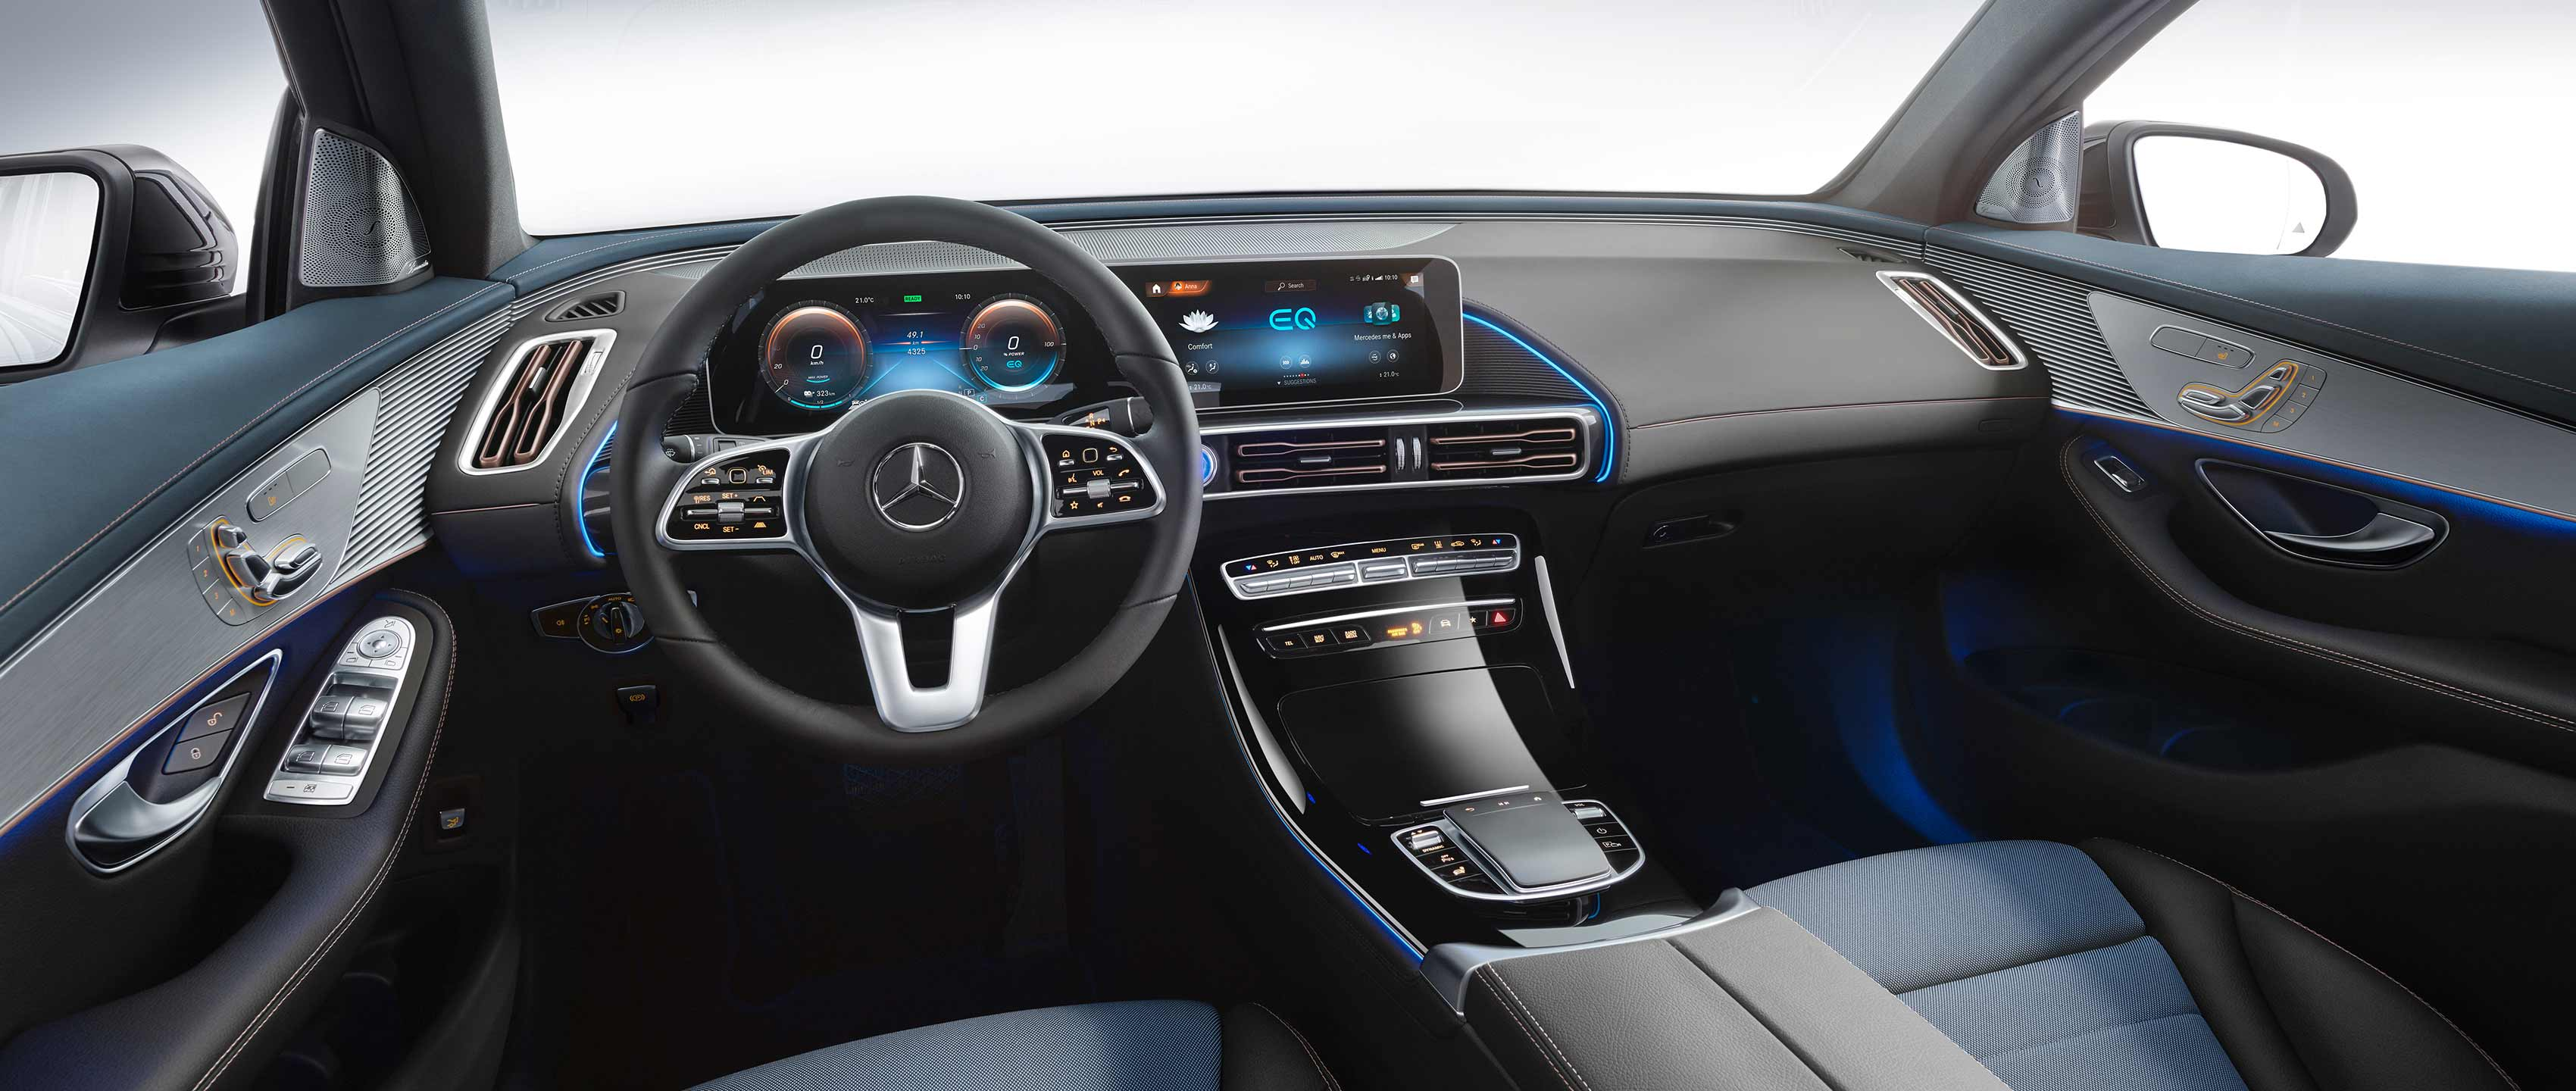 mercedes benz vehicle 2019 eqc interior